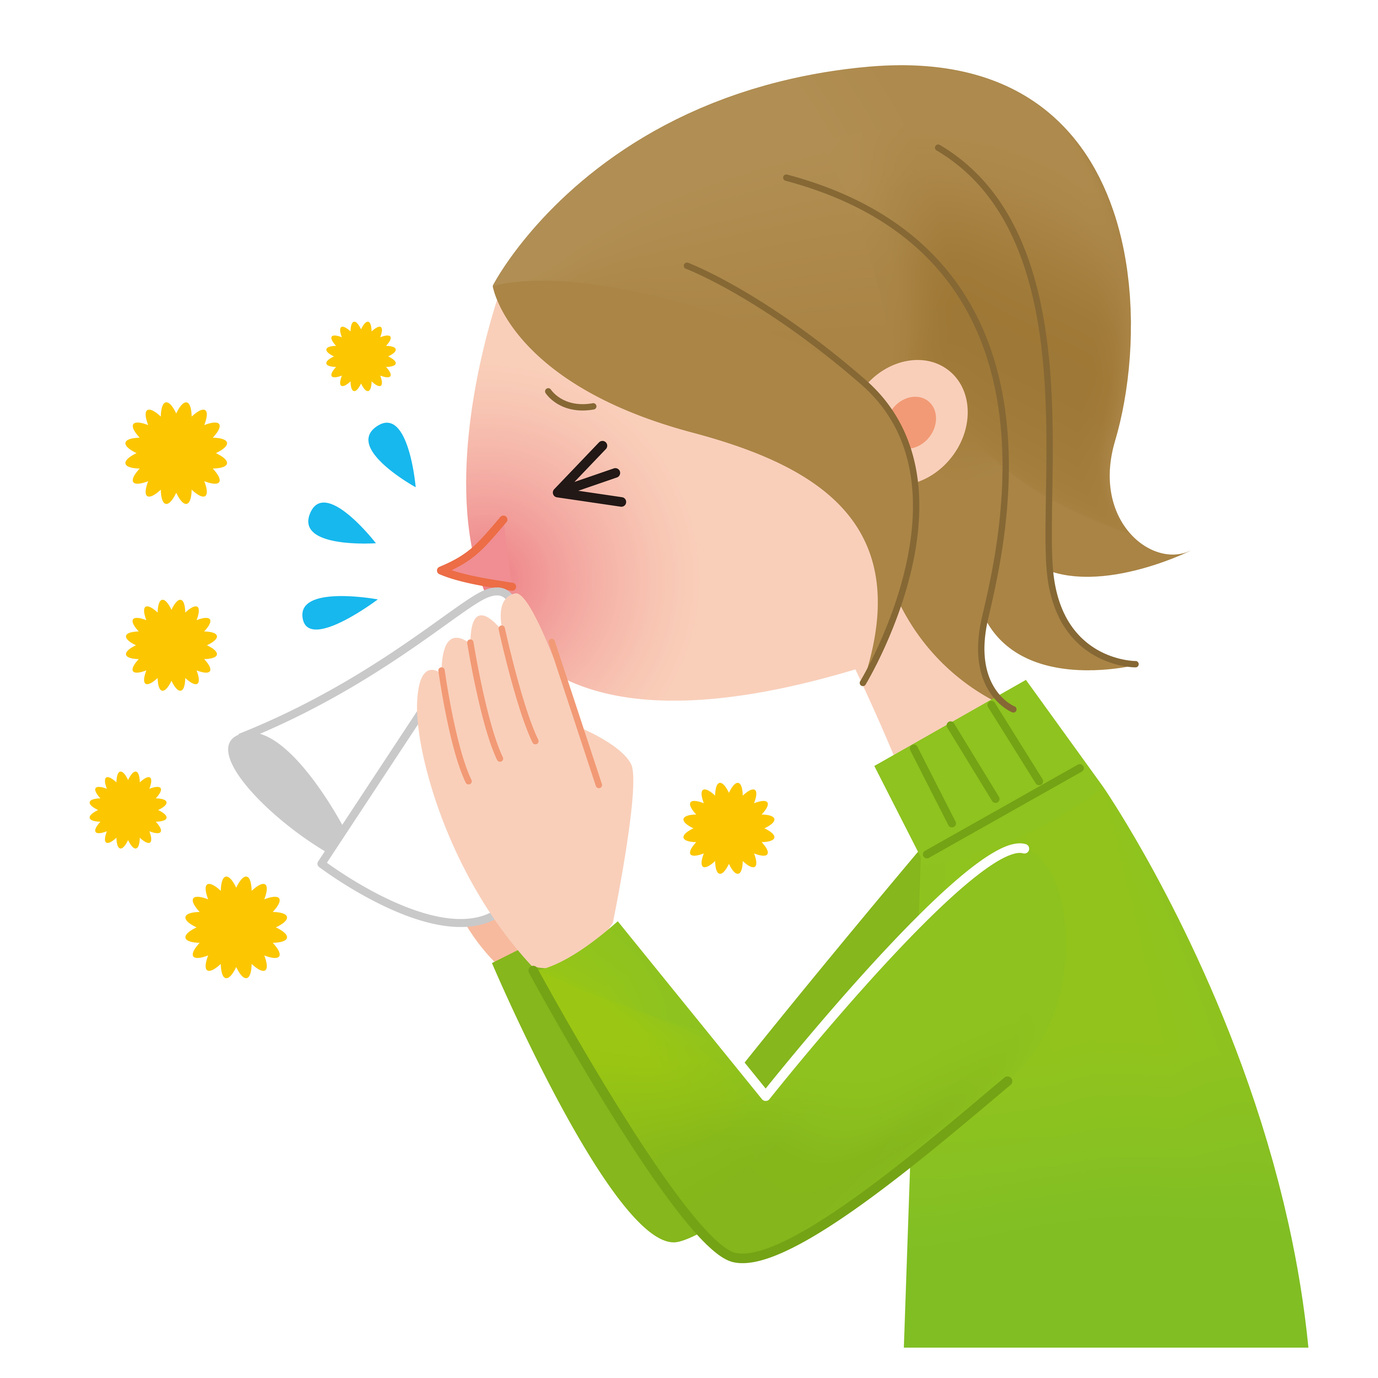 Free cliparts download clip. Germs clipart cold flu